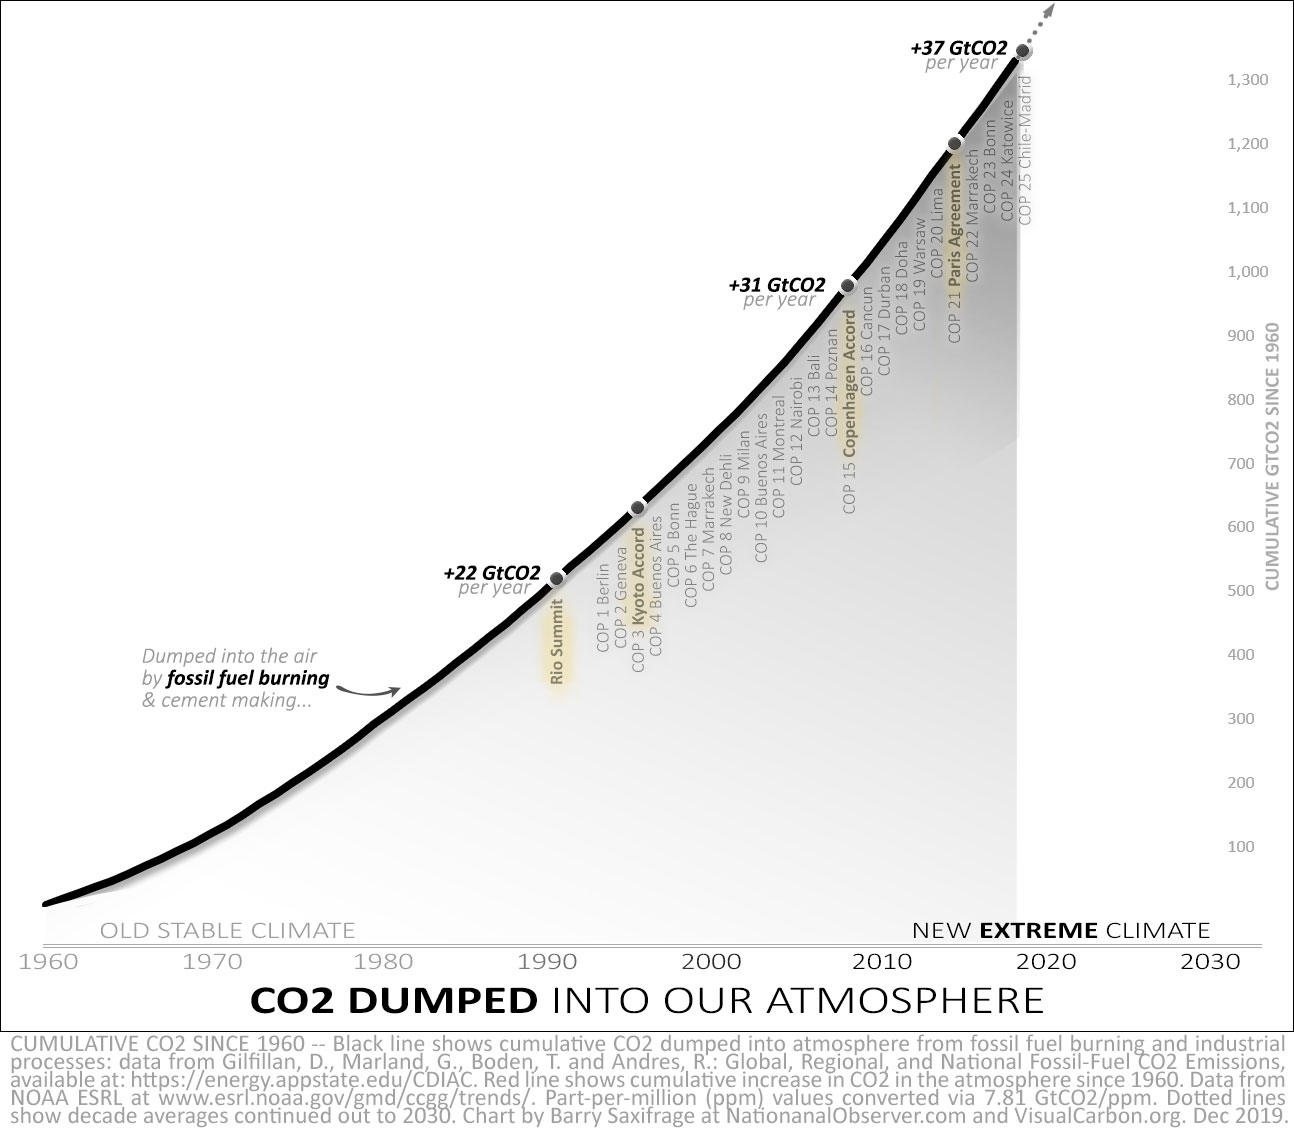 Cumulative CO2 from fossil fuel burning since 1960